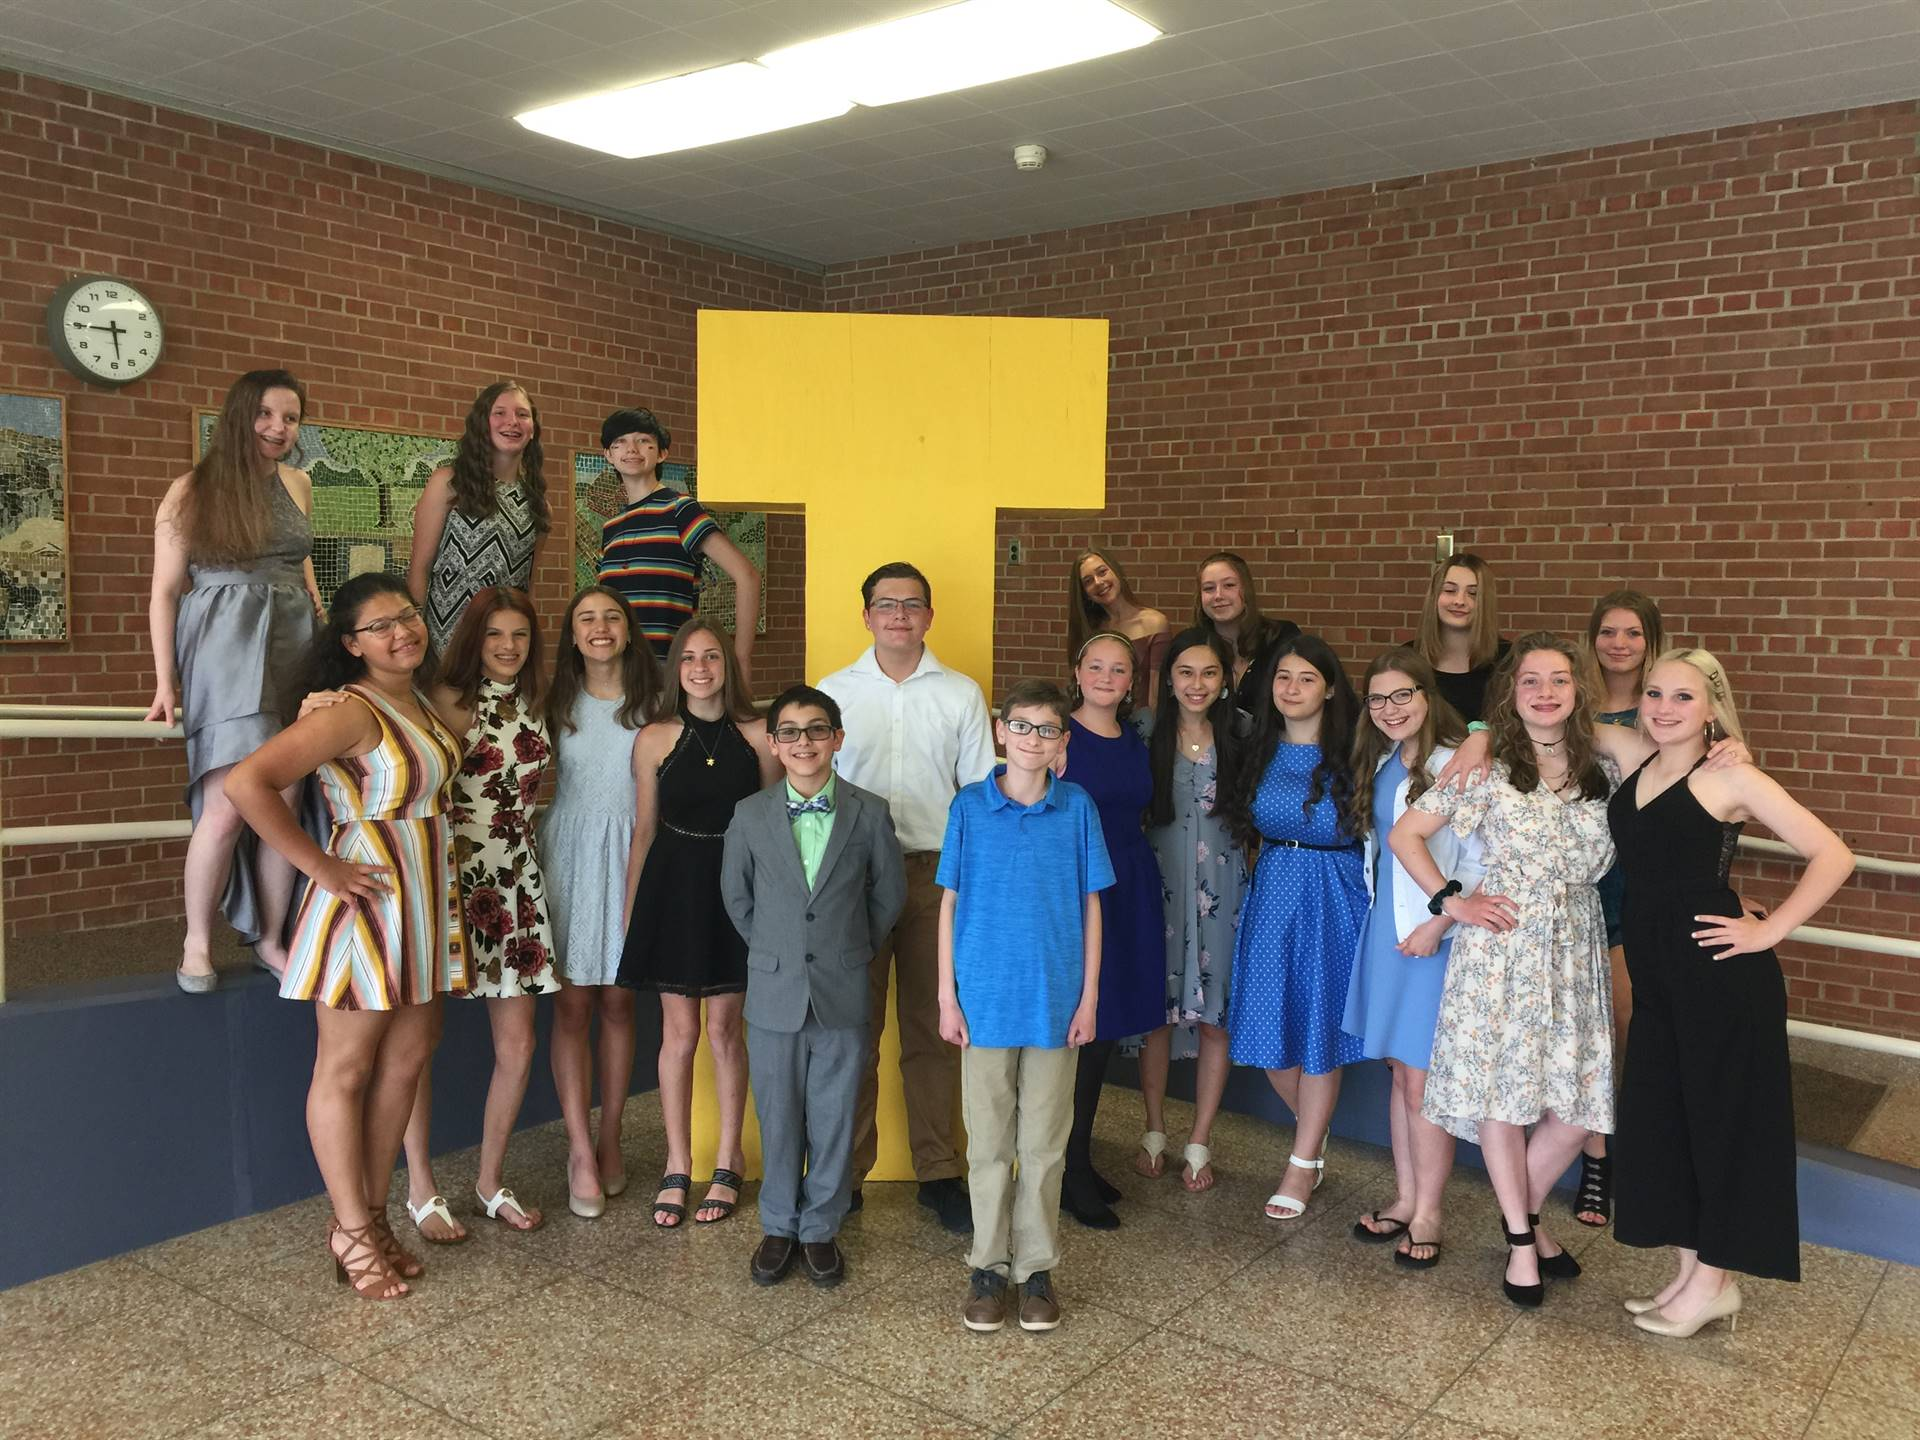 Congratulations to the 8th graders!